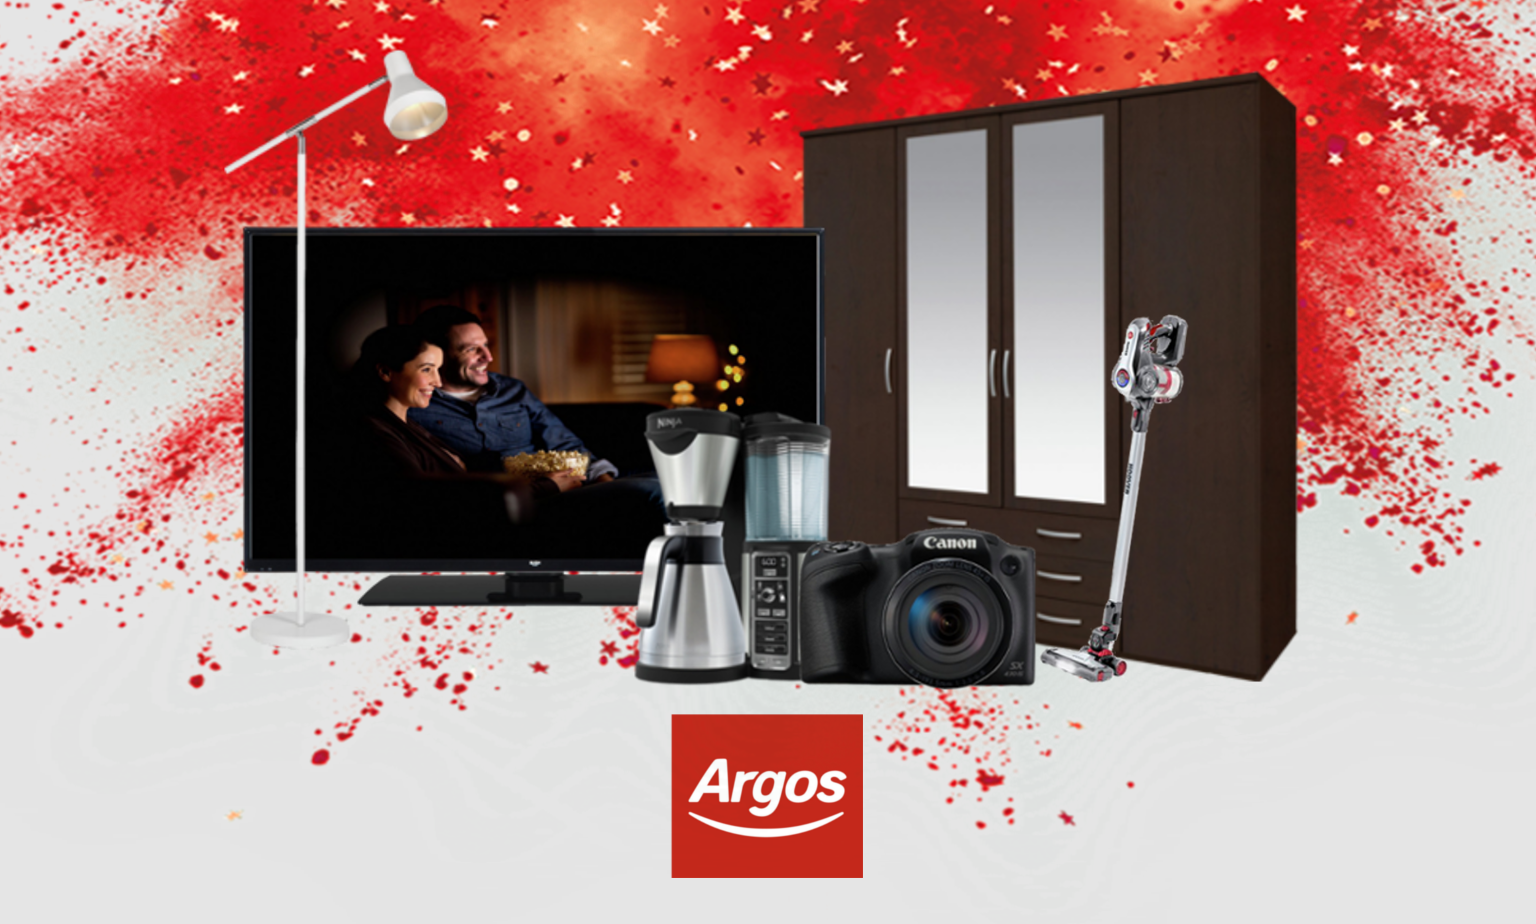 The Big Sale by Argos